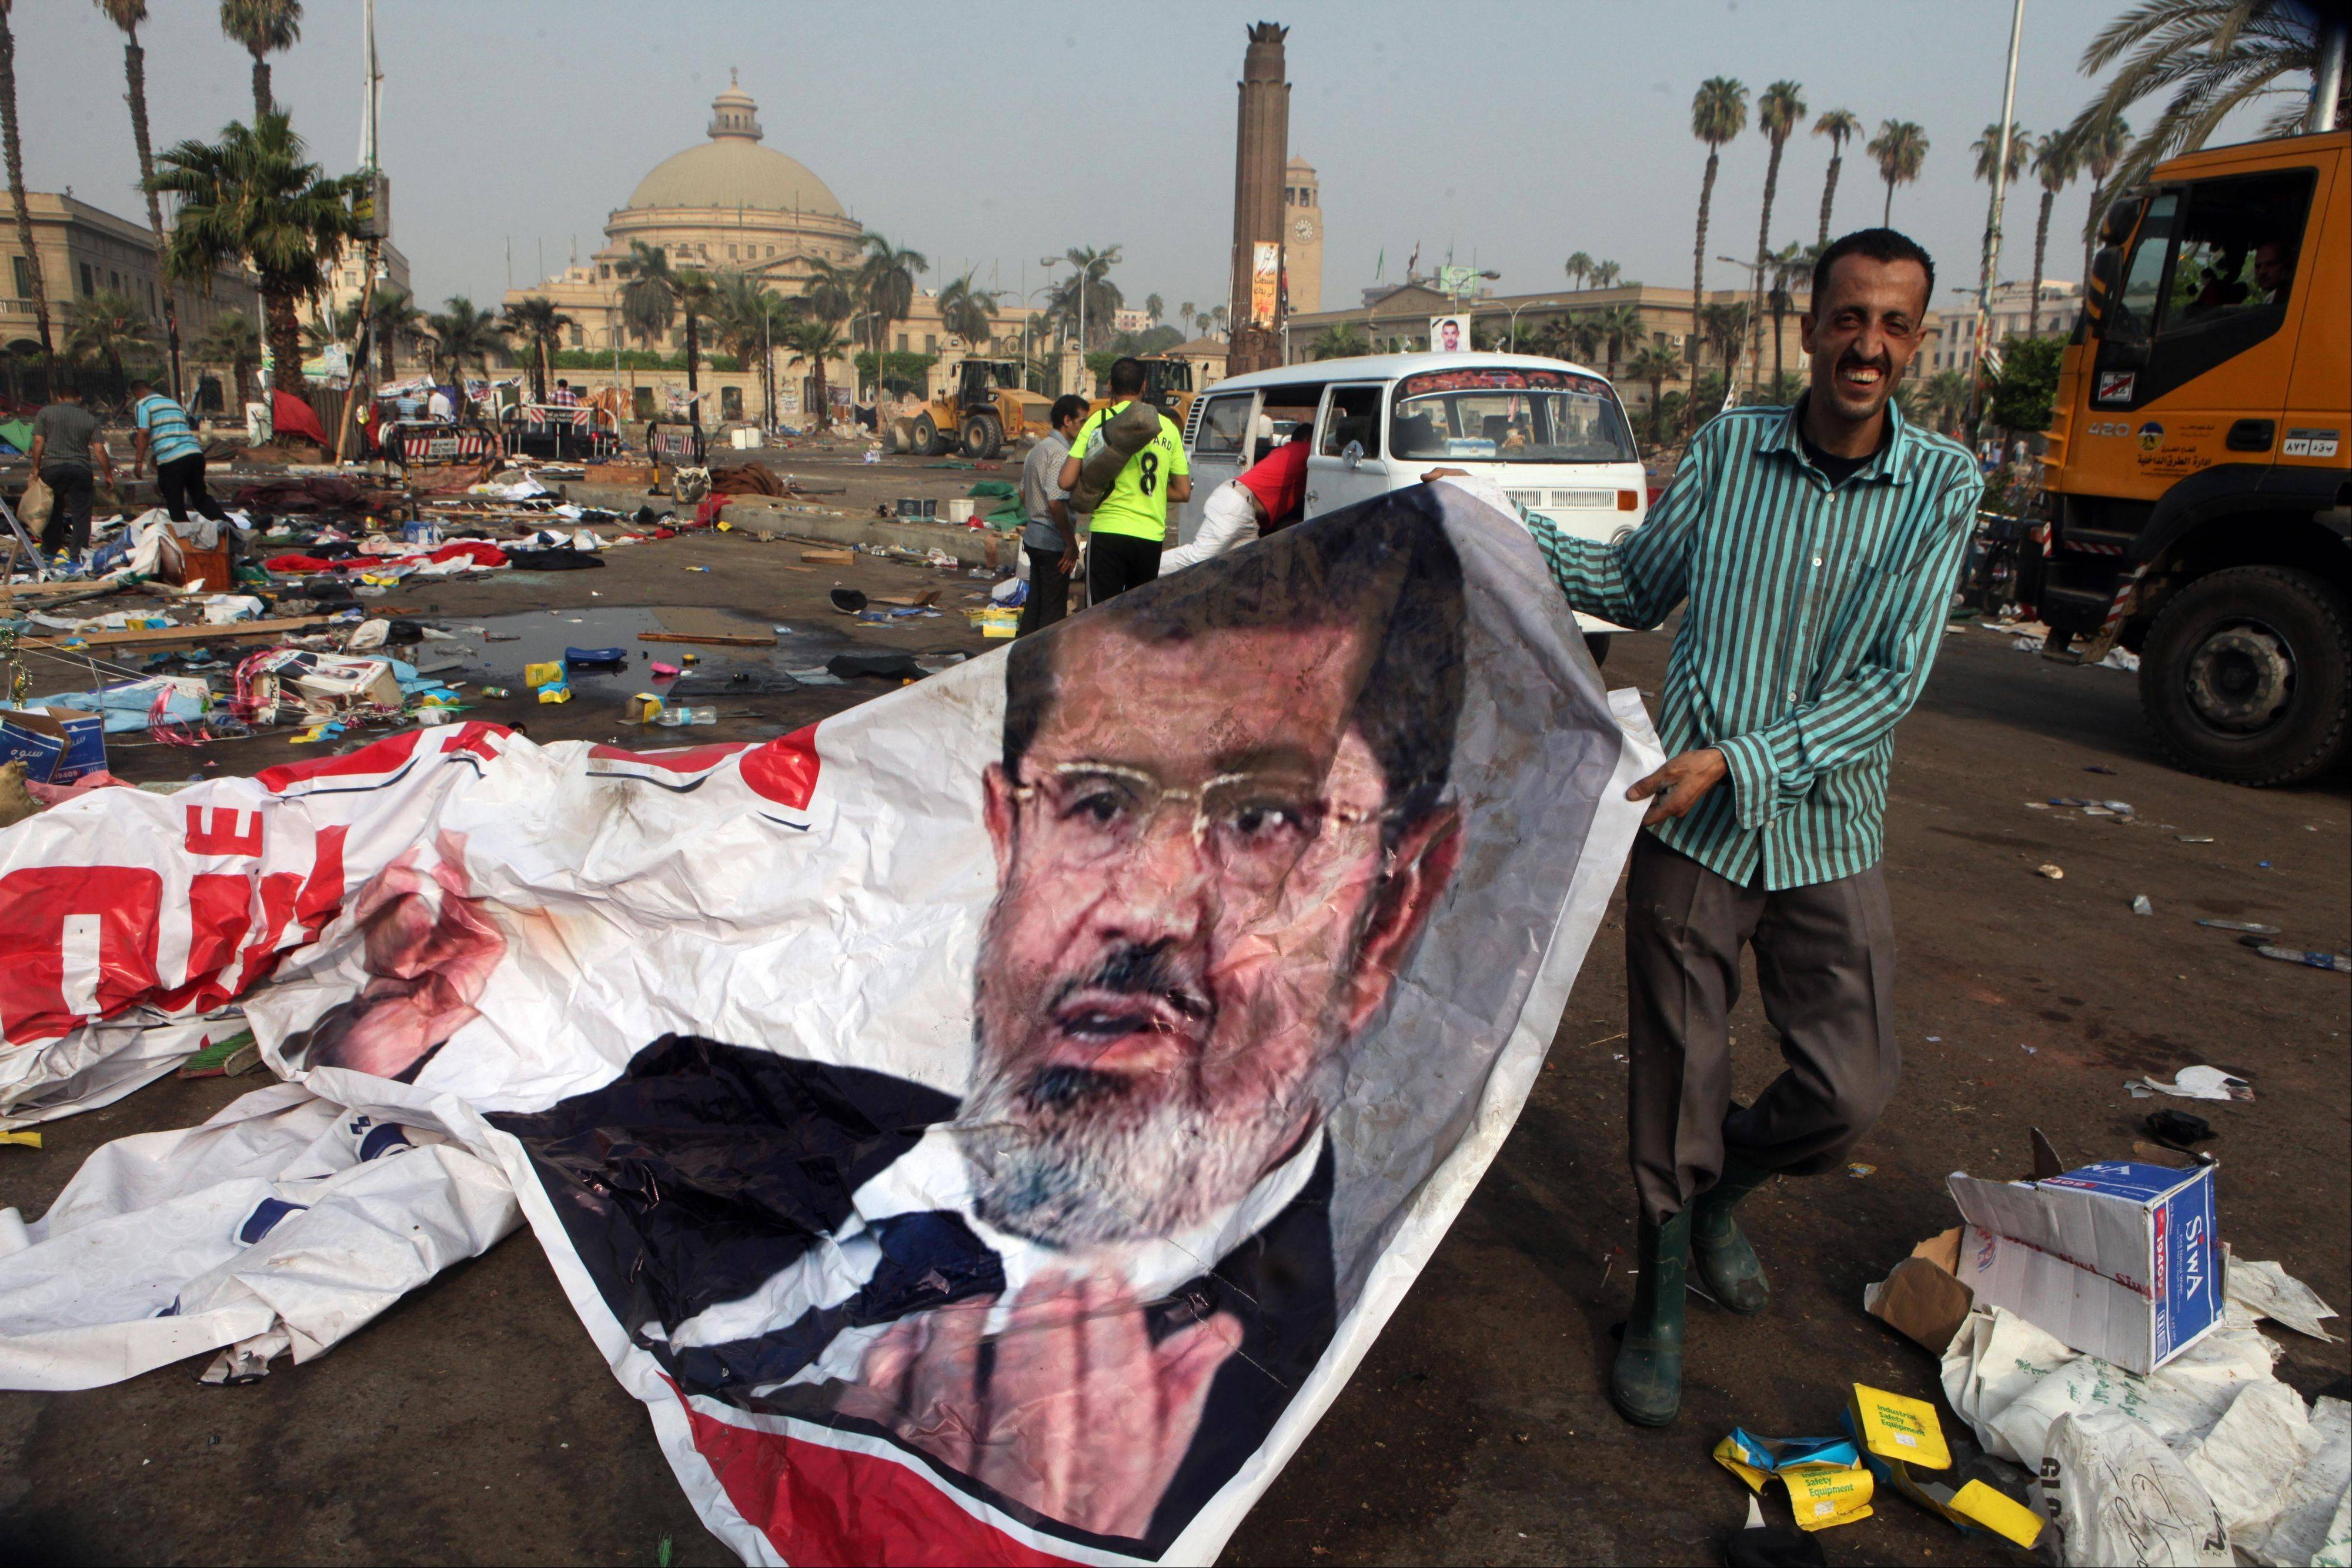 An Egyptian pulls a banner of Egypt�s ousted President Mohammed Morsi near debris left at a protest camp in Nahda Square, Giza, Cairo, Egypt, Thursday, Aug. 15, 2013. Egypt faced a new phase of uncertainty on Thursday after the bloodiest day since its Arab Spring began.